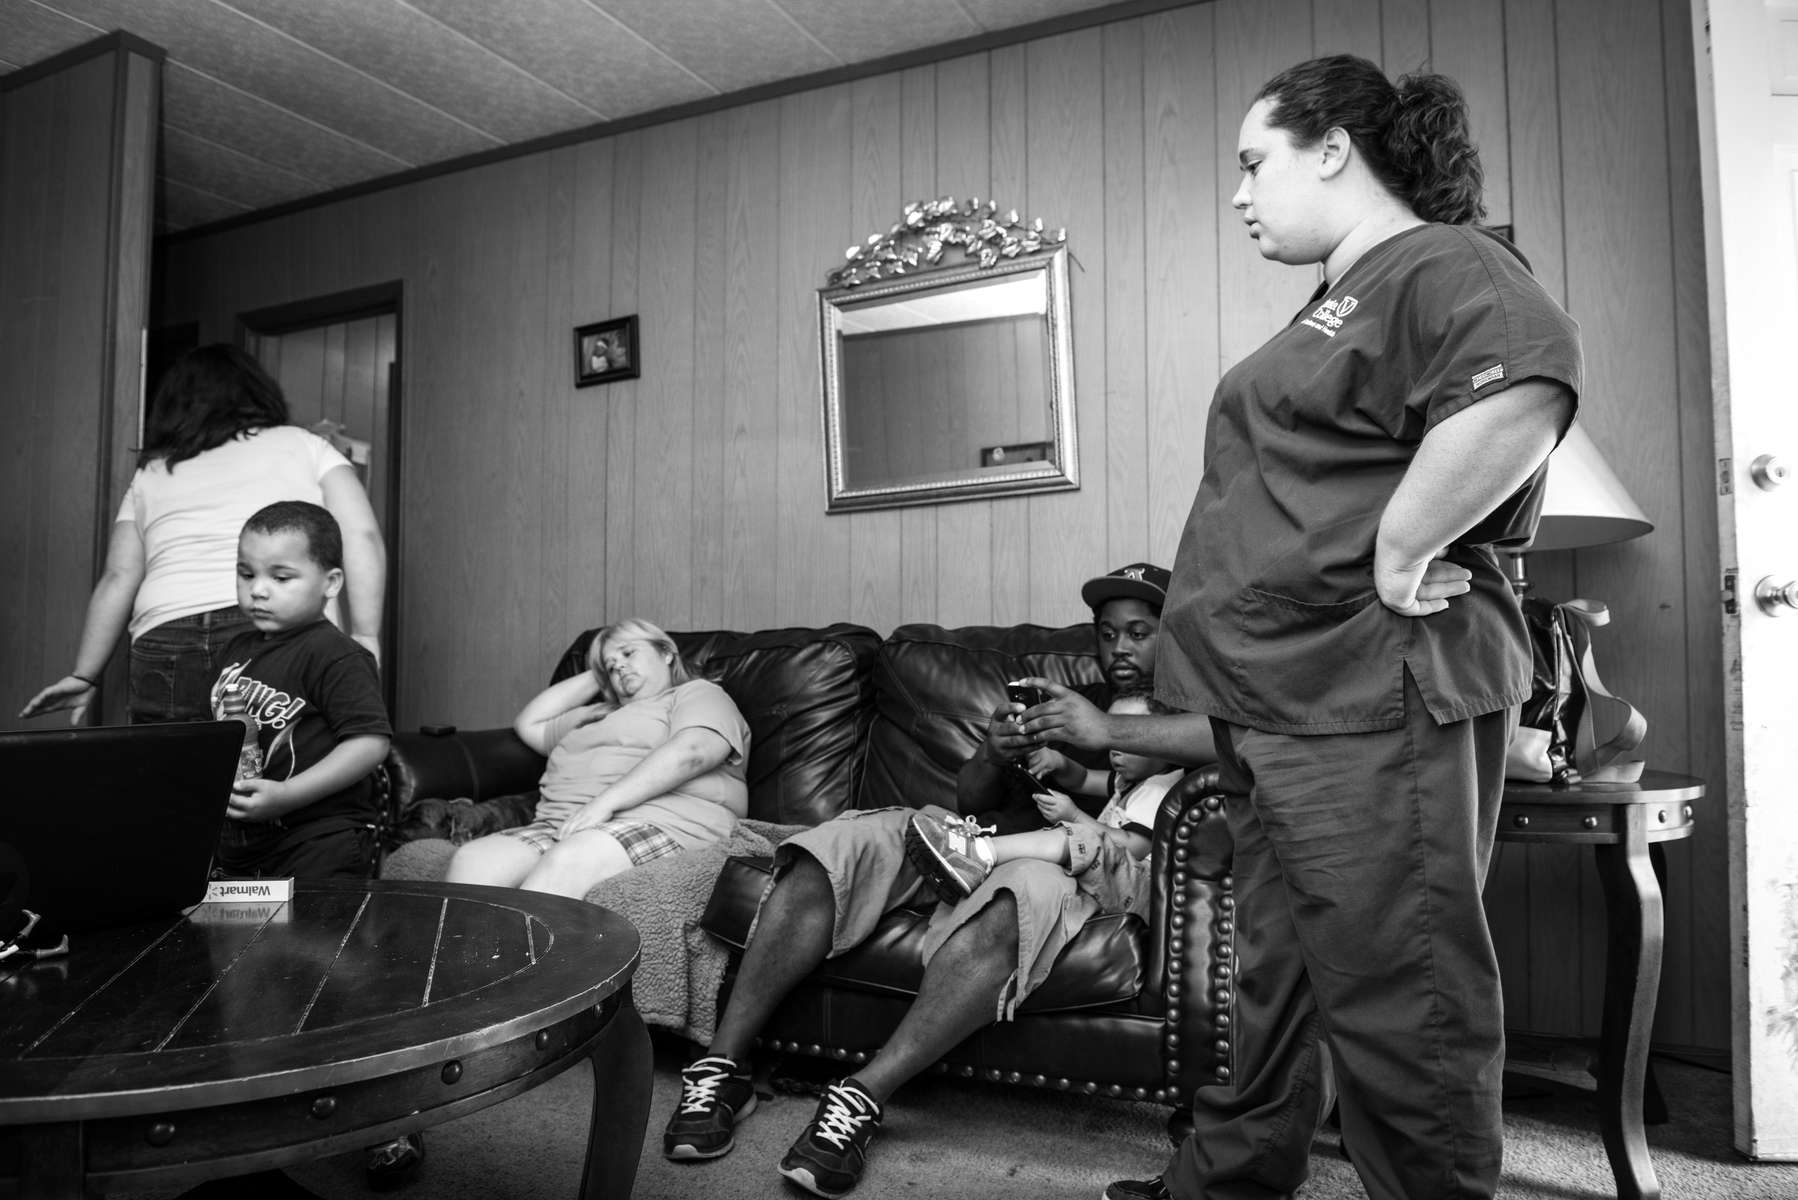 Jessica McGowan at the house she shares with her mother and other family members in Chattanooga, TN on August 22, 2013.